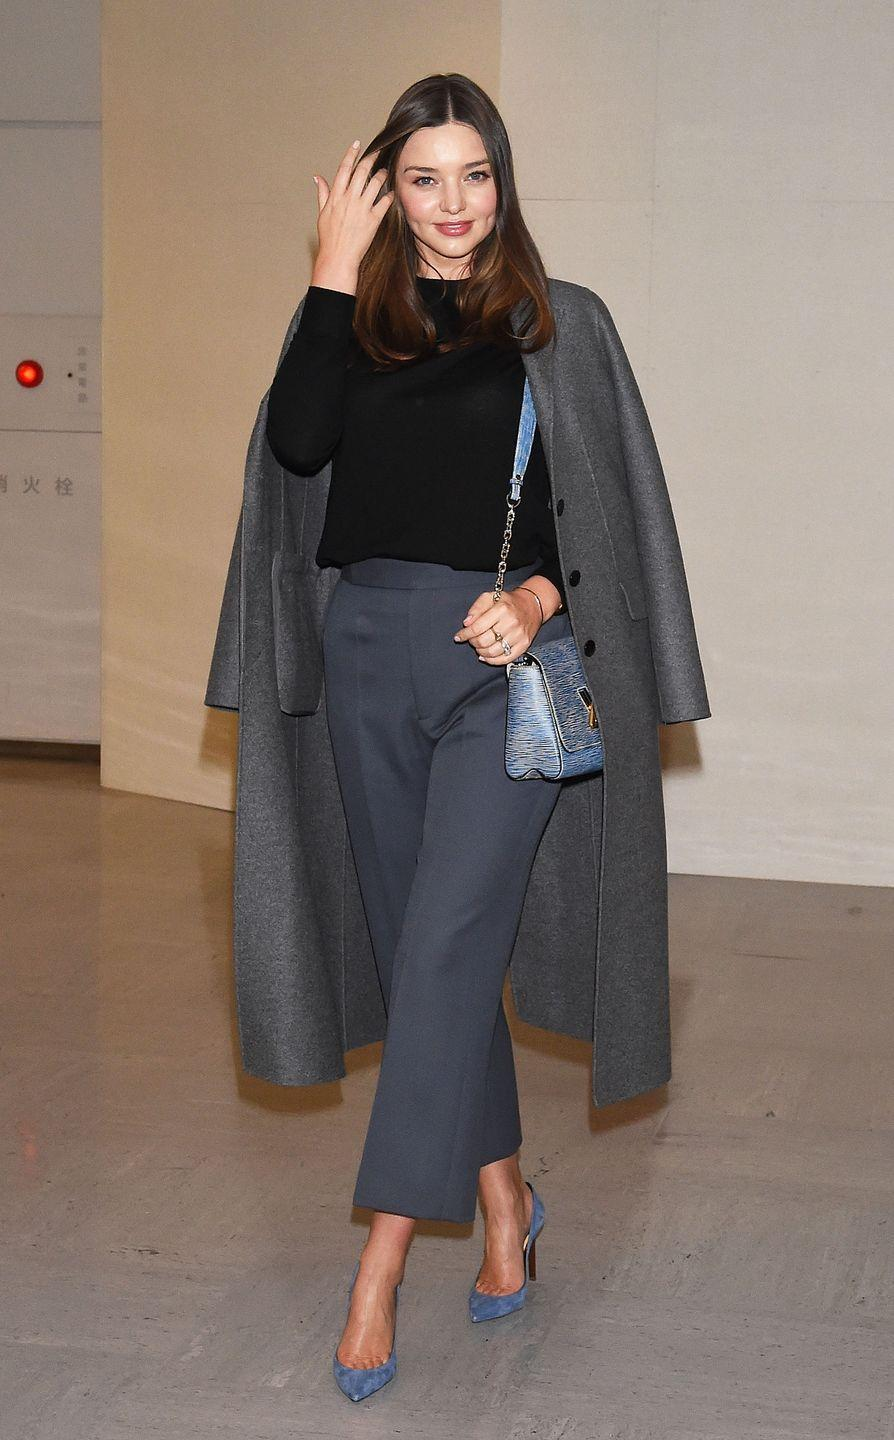 <p><strong>Miranda Kerr, 2019: </strong>The model arrived in Tokyo dressed to impress and basically put everyone else to shame for ever exiting an aircraft with crumbs on their leggings or disheveled hair.</p>